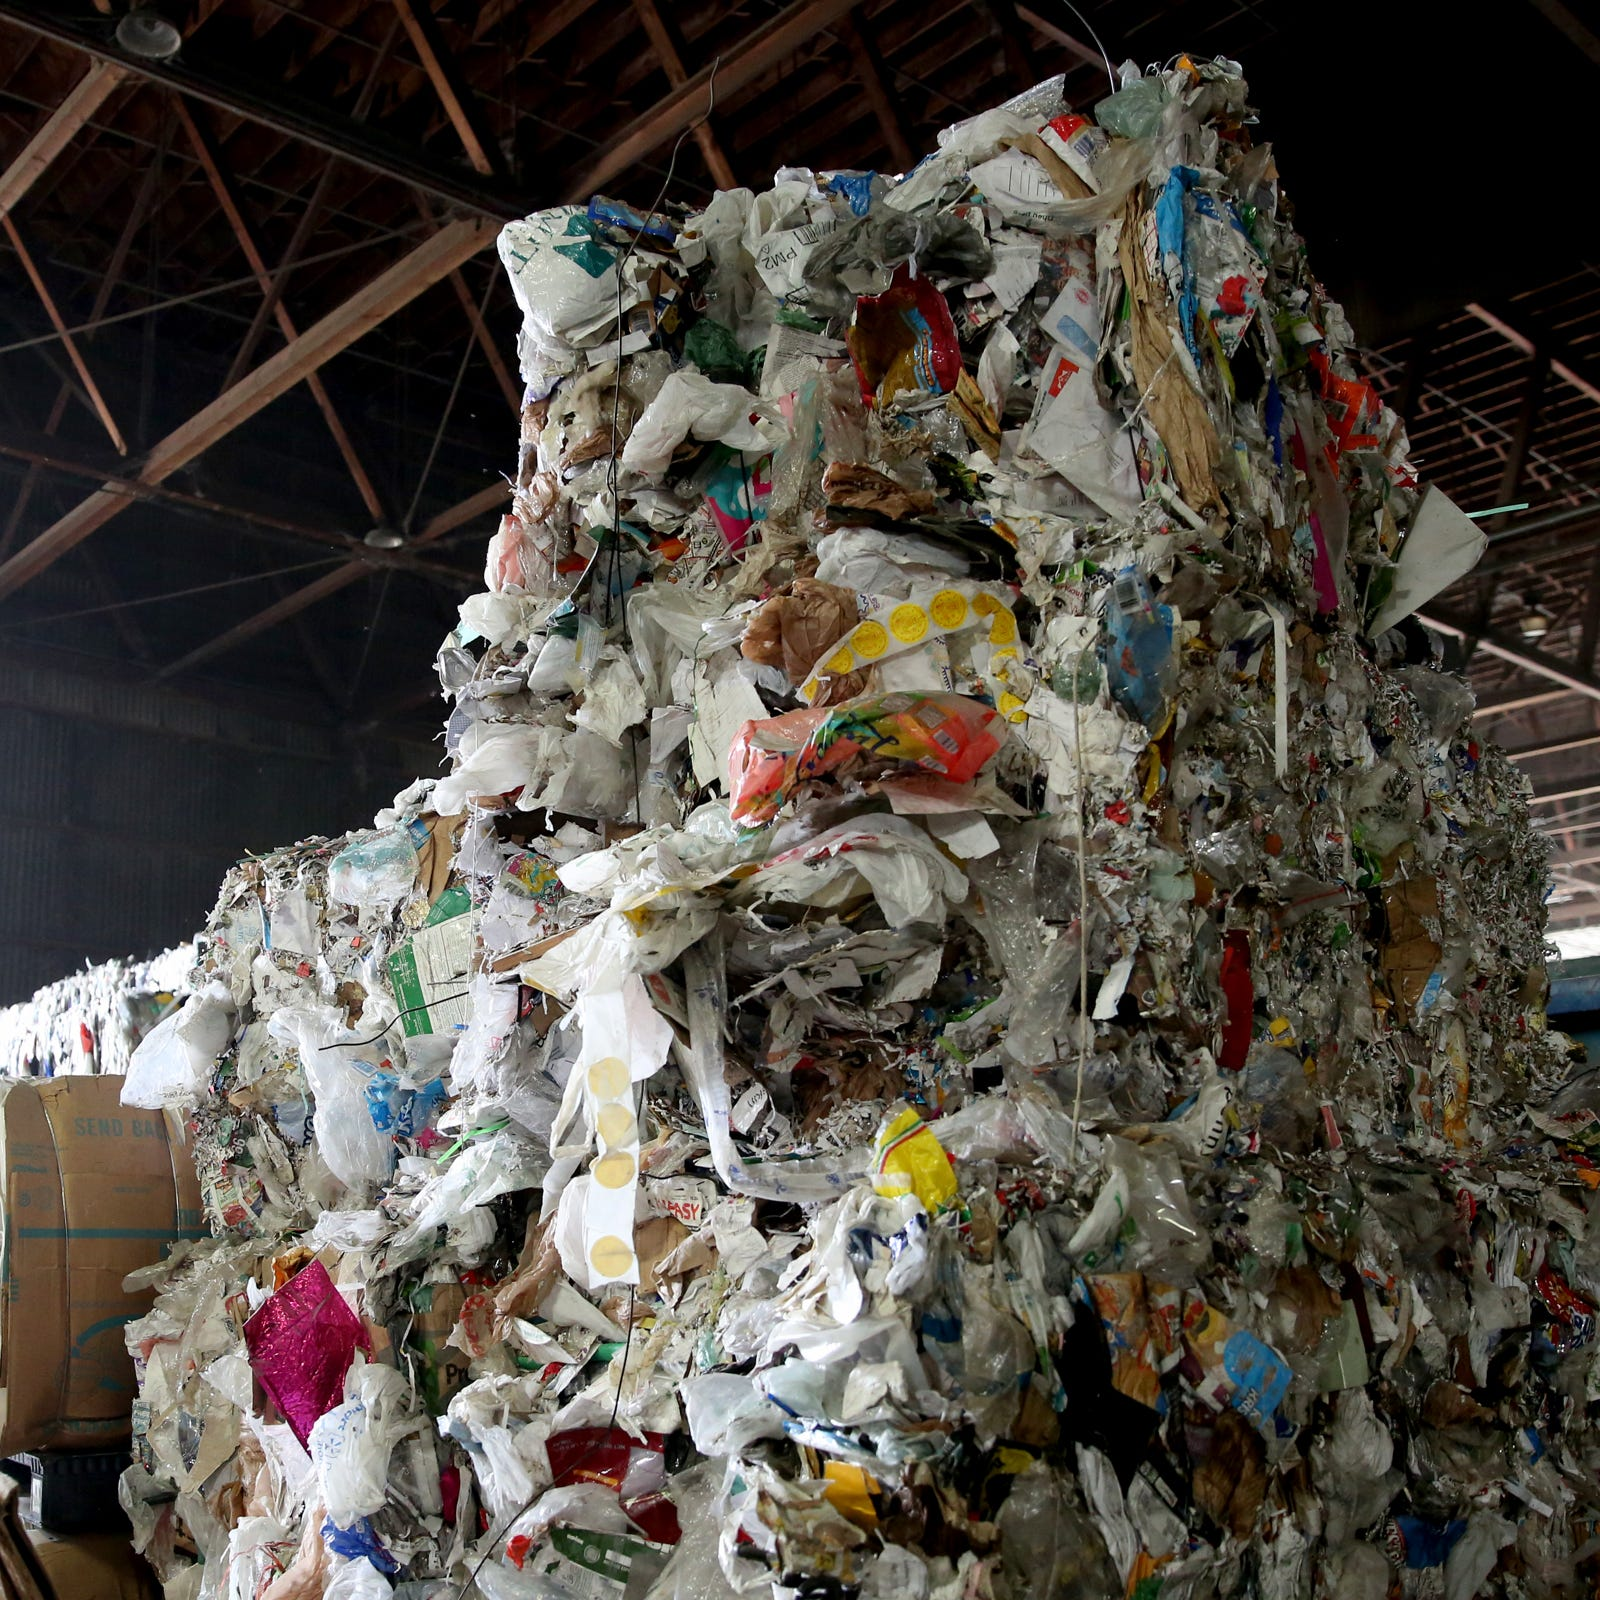 23 million pounds of recyclables dumped in Oregon landfills